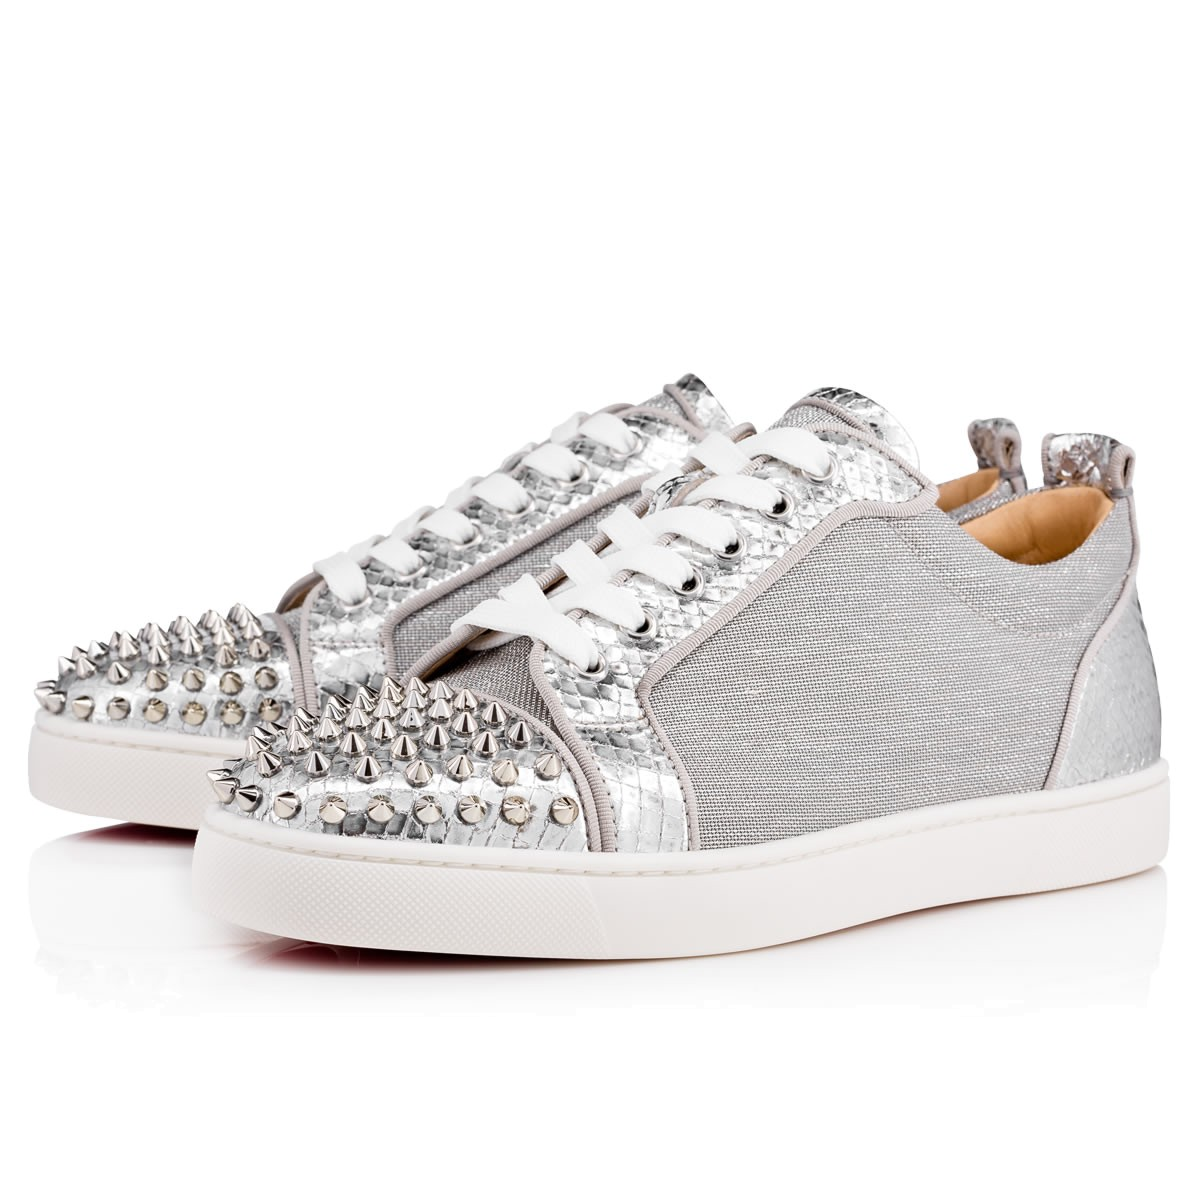 413bb931d5f0 Christian Louboutin Louis Junior Spikes Men s Flat Version Silver Lame  Sirene - Men Shoes -